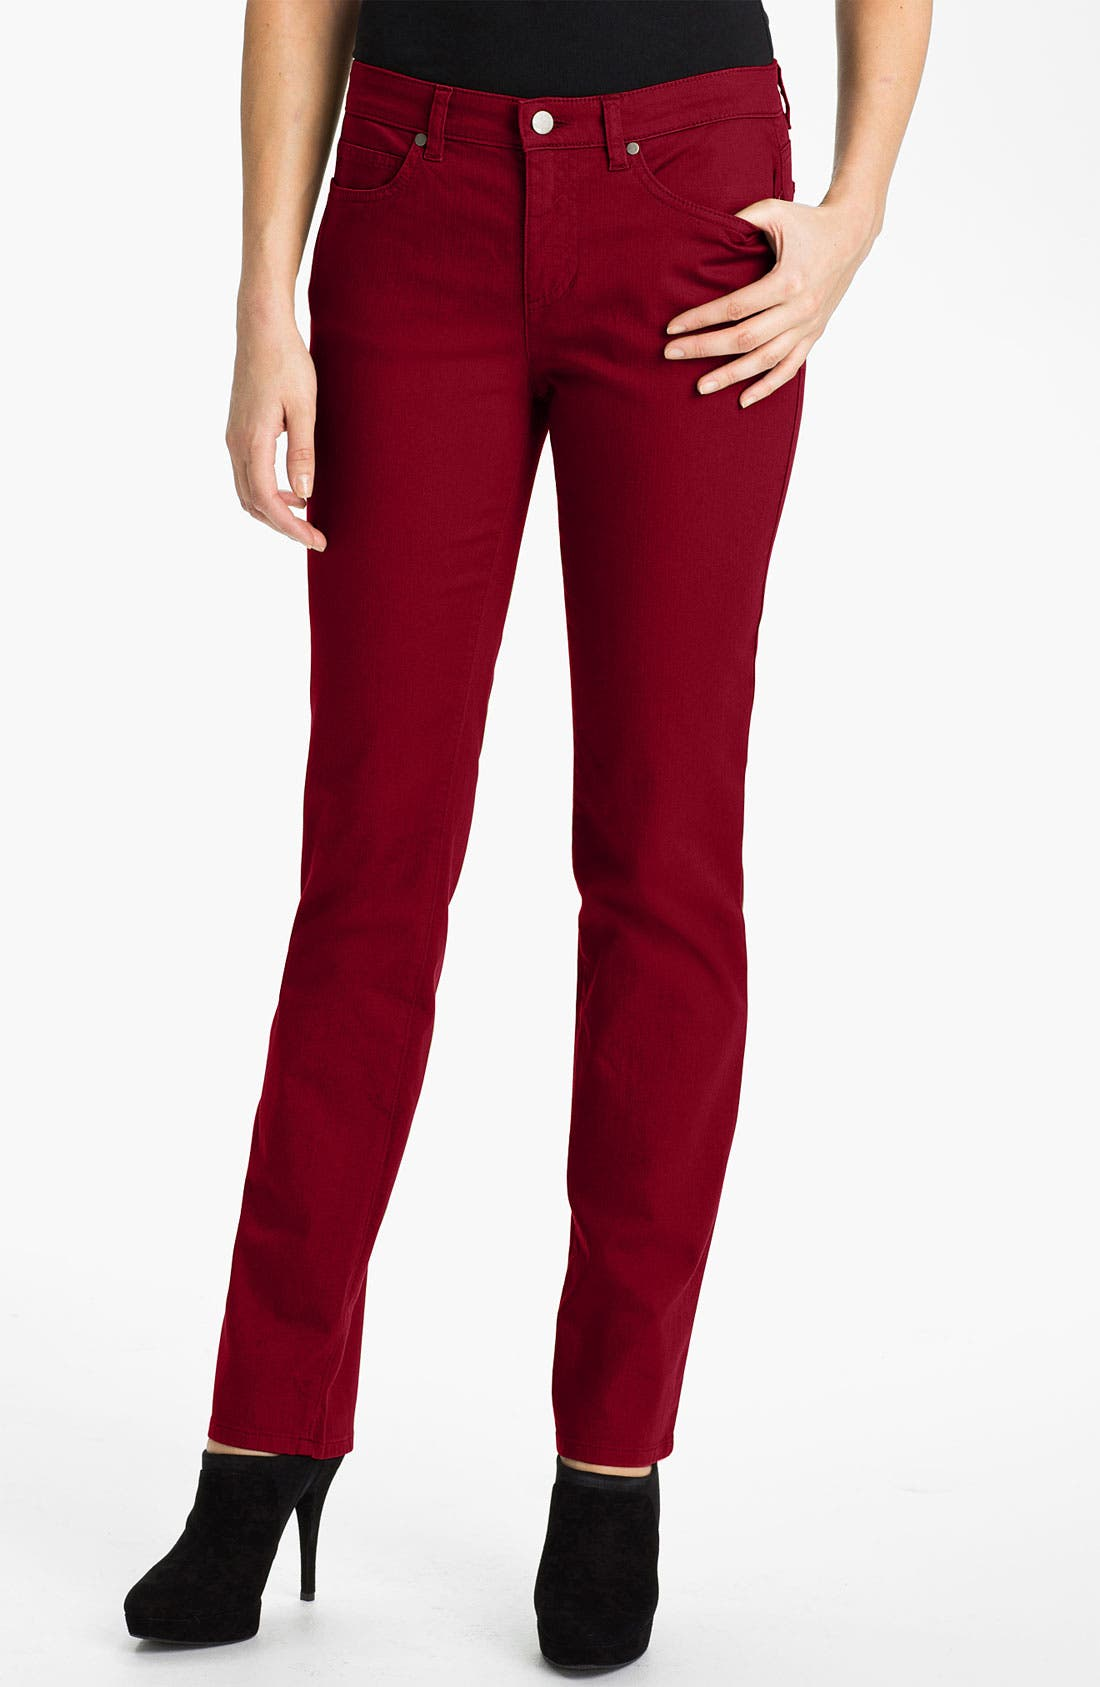 Alternate Image 1 Selected - Eileen Fisher Colored Denim Jeans (Online Exclusive)